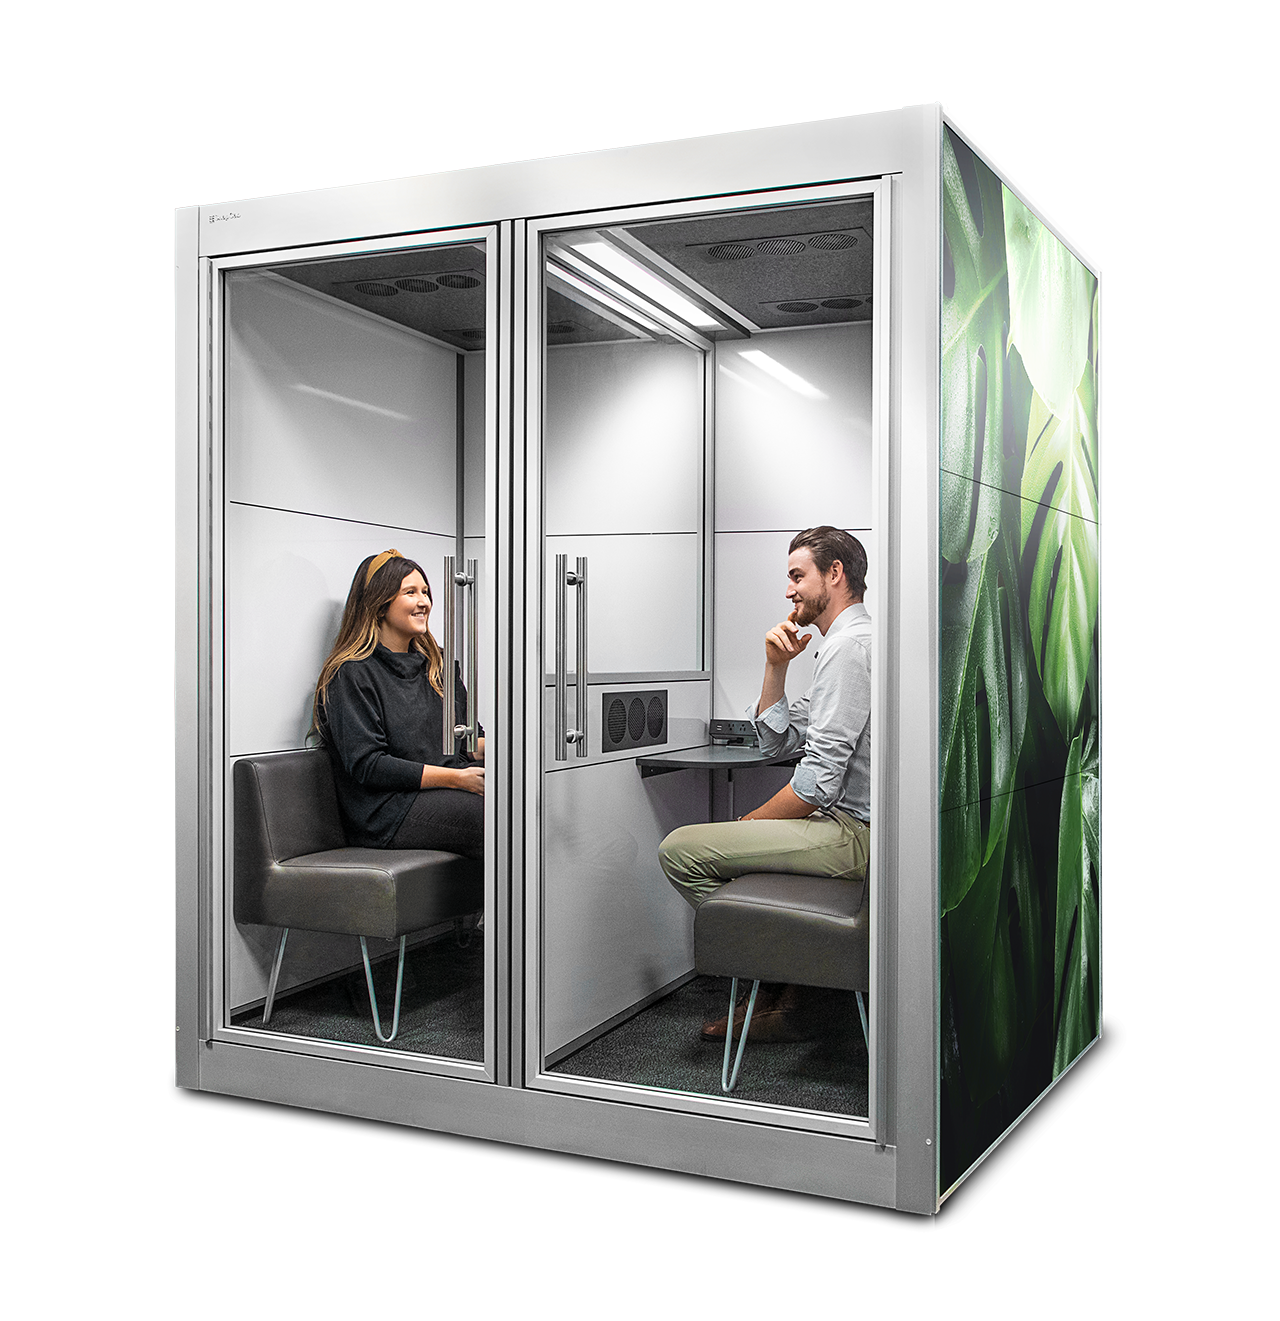 workspace pod with two people inside on white background